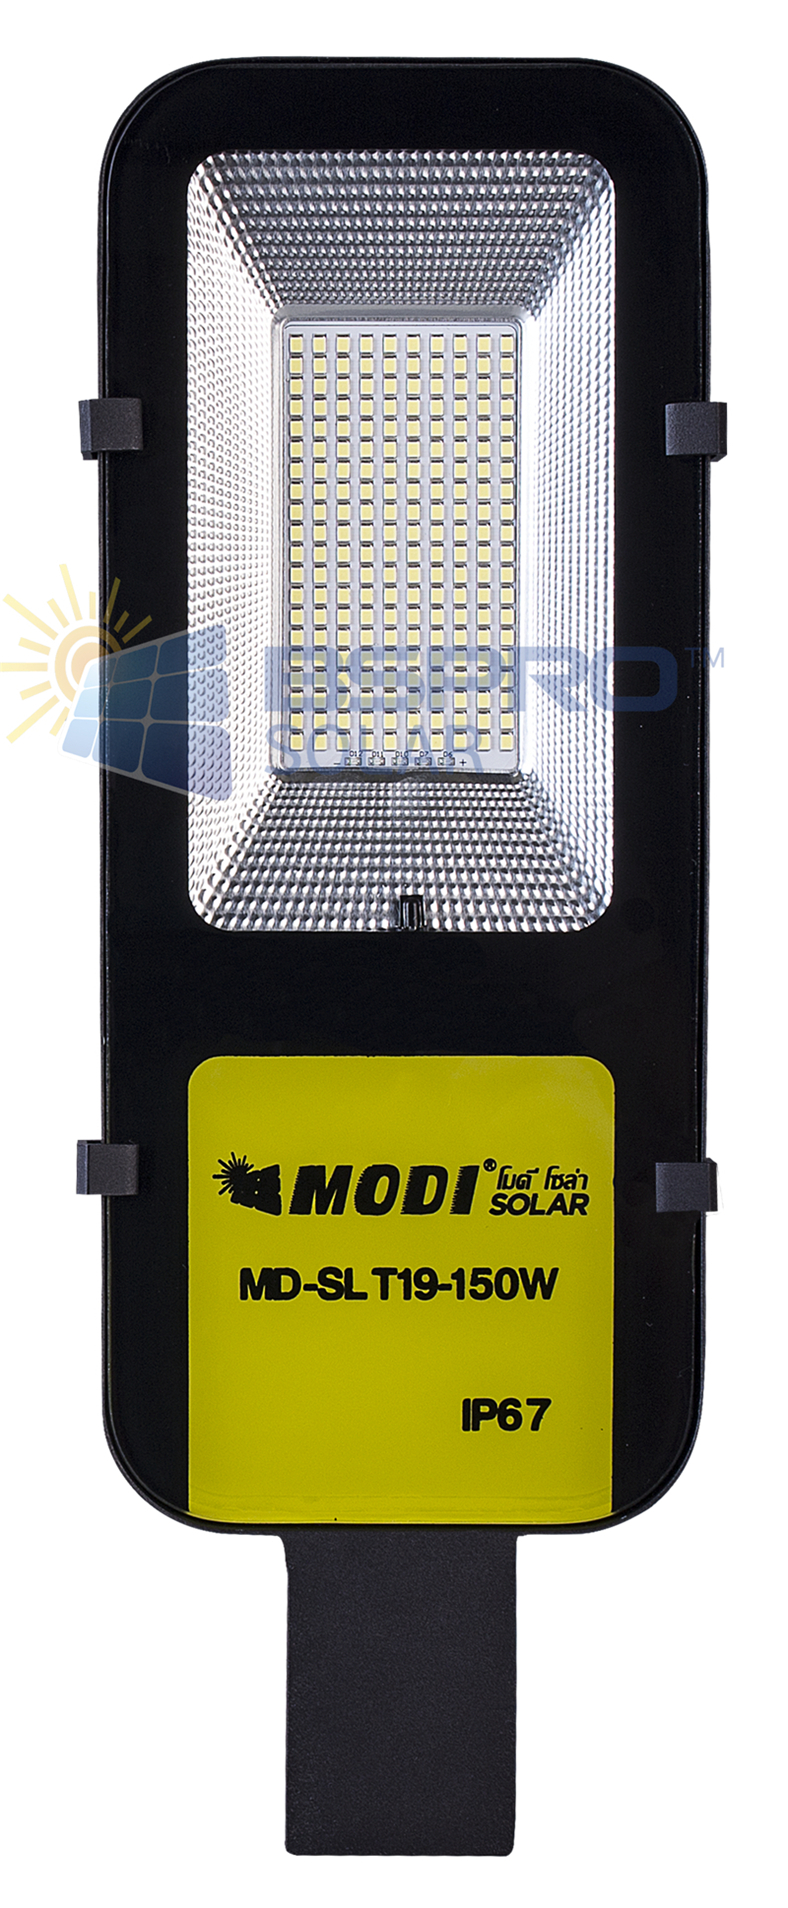 150W solar powered street lights